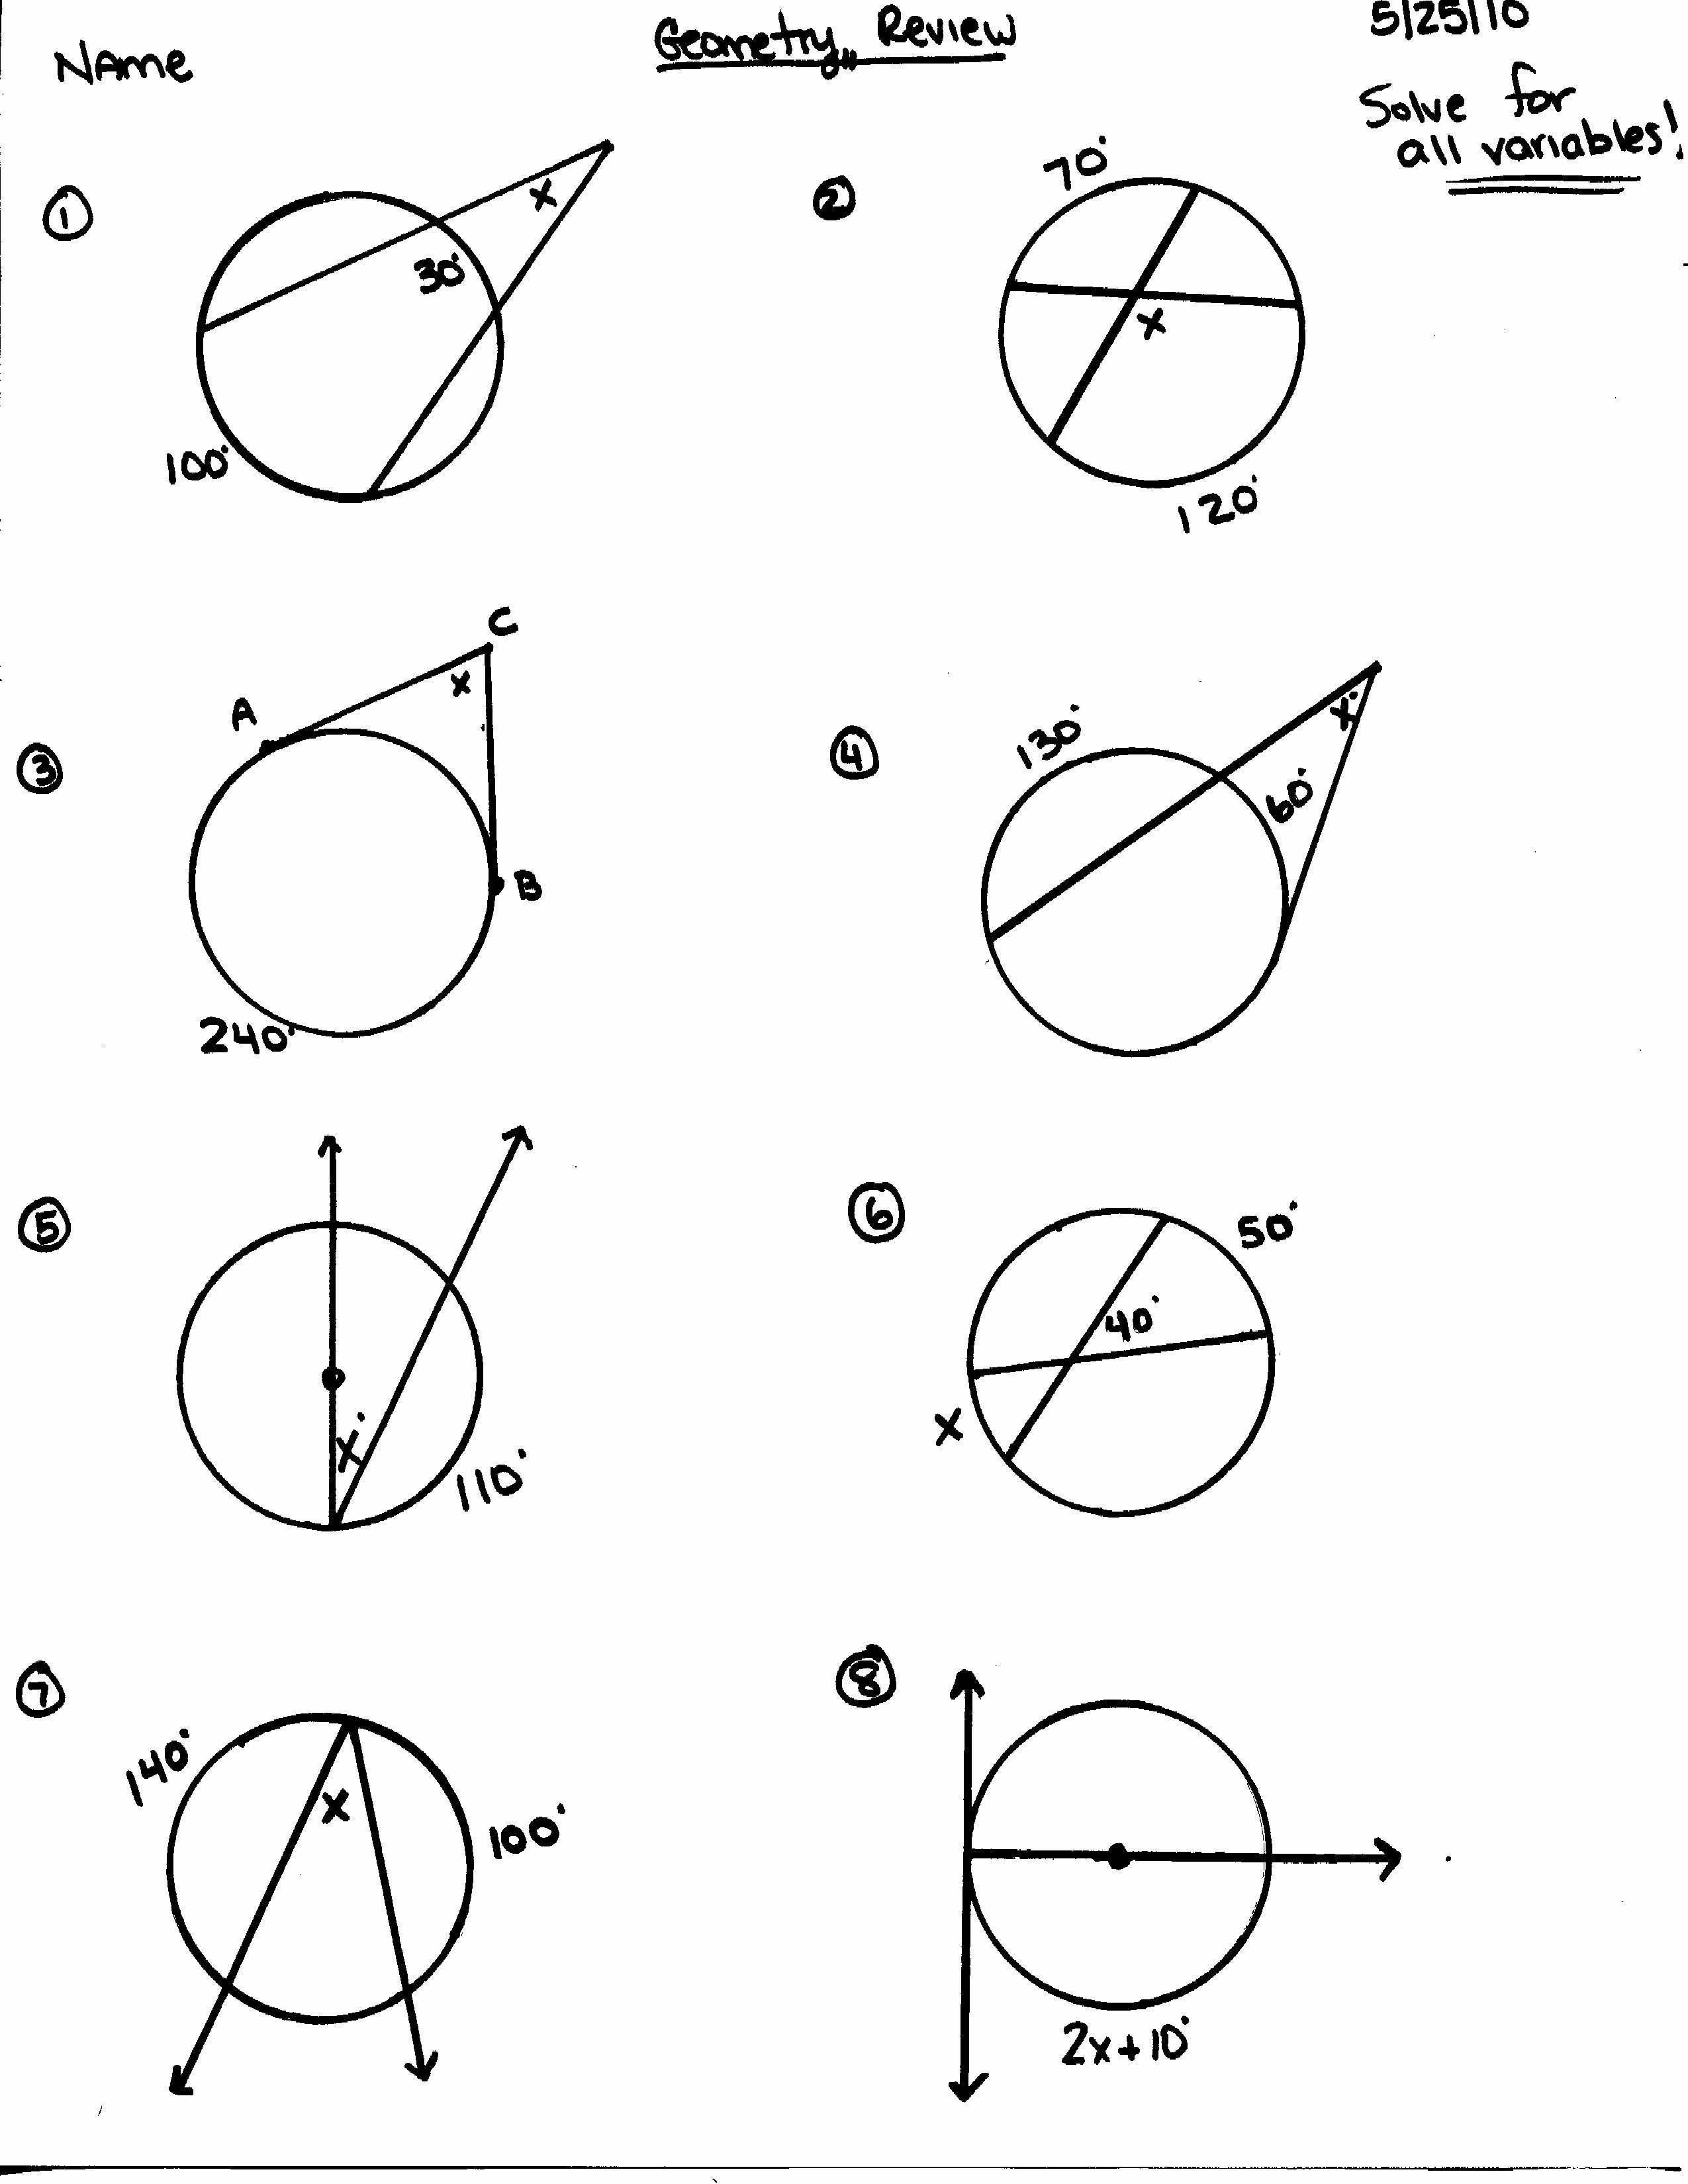 Angles In A Circle Worksheet Lovely Circle theorems Match Up by Debbs  Bridgman – Chessmuseum Template Libra…   Geometry proofs [ 3300 x 2550 Pixel ]